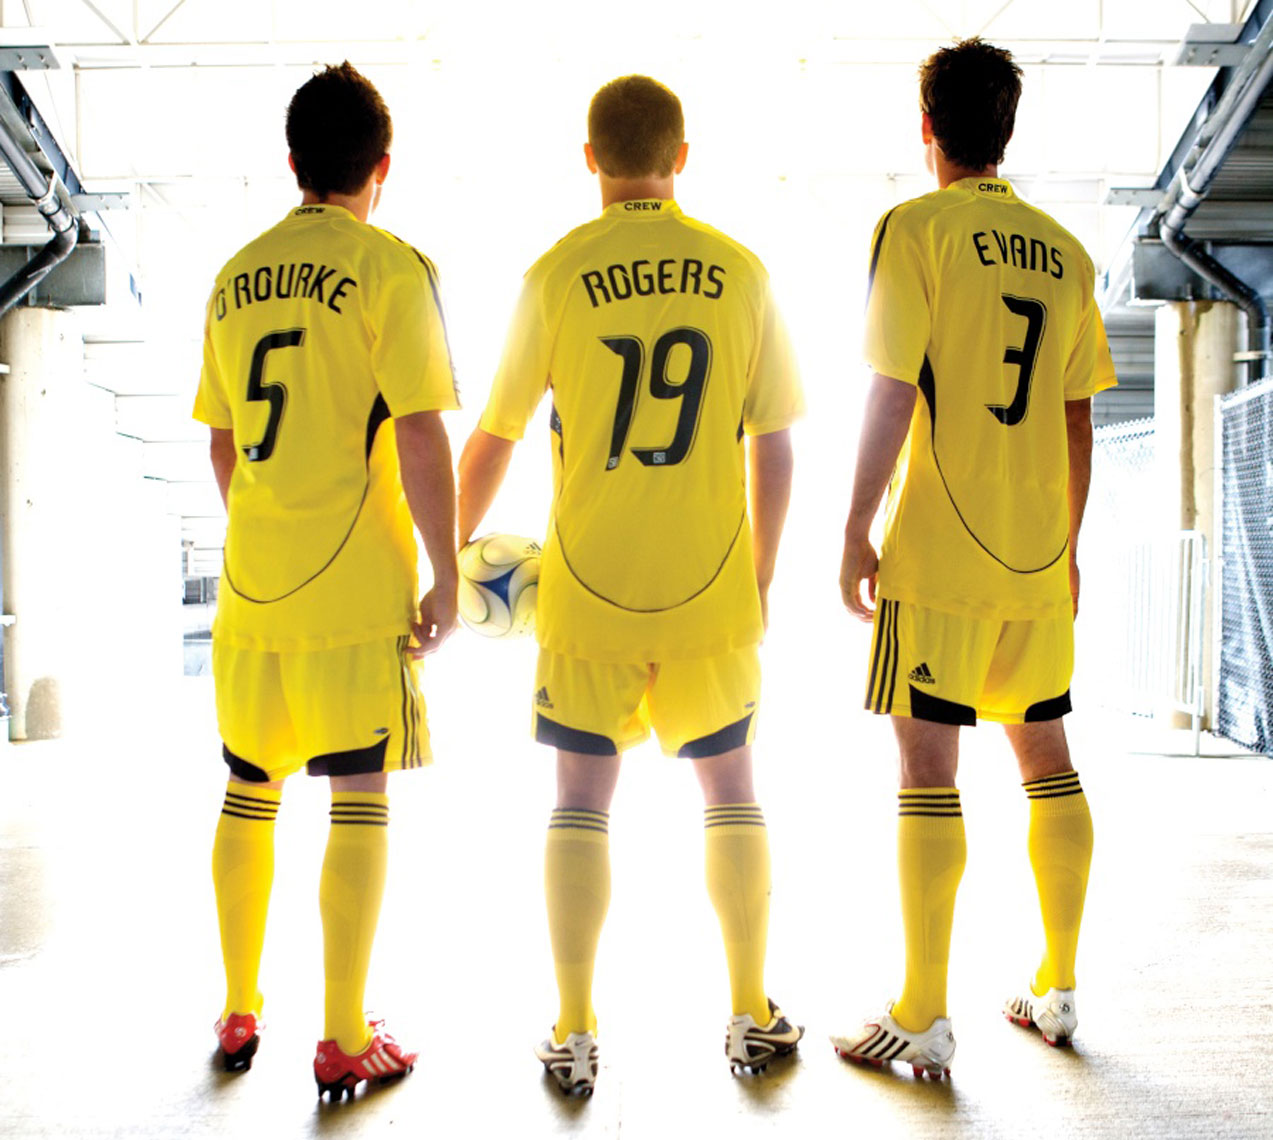 Columbus Crew - Illumination Studio - Eric Wagner